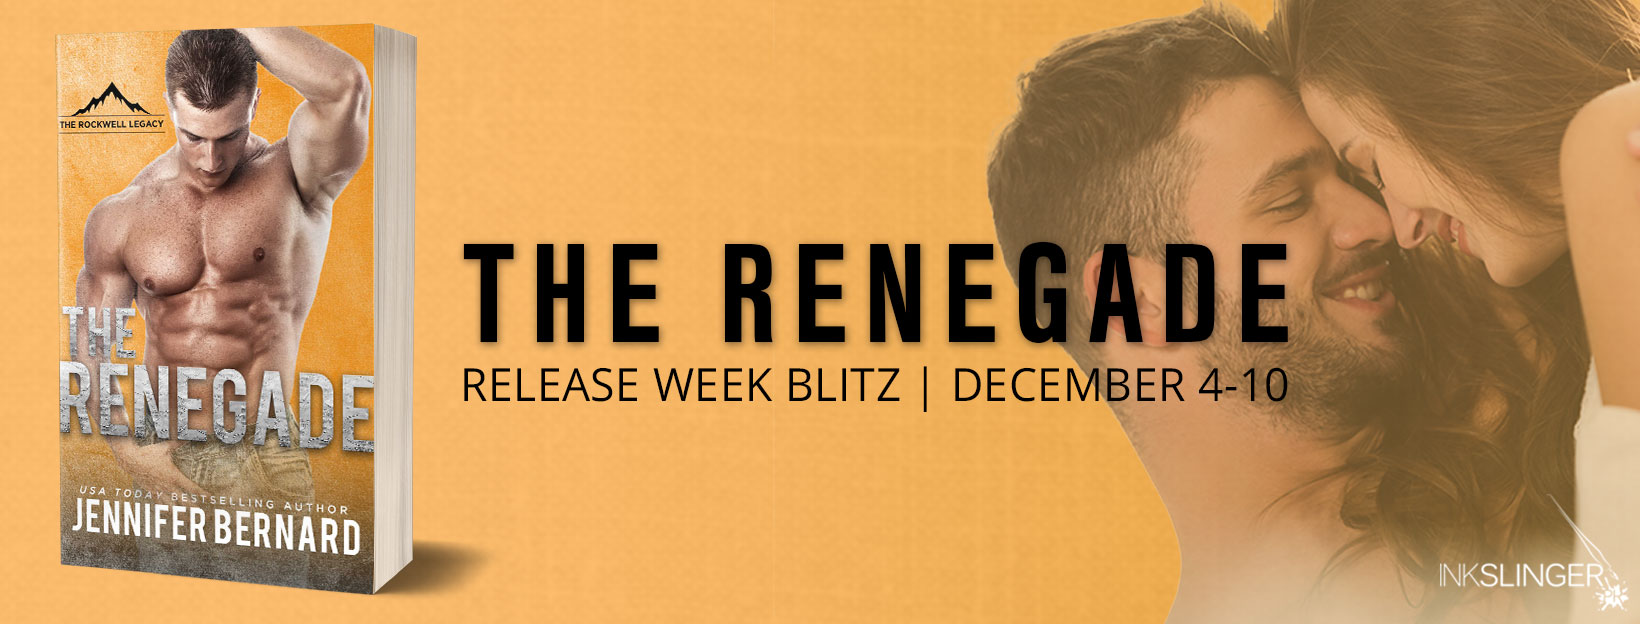 Blog Tour & Giveaway: The Renegade by Jennifer Bernard